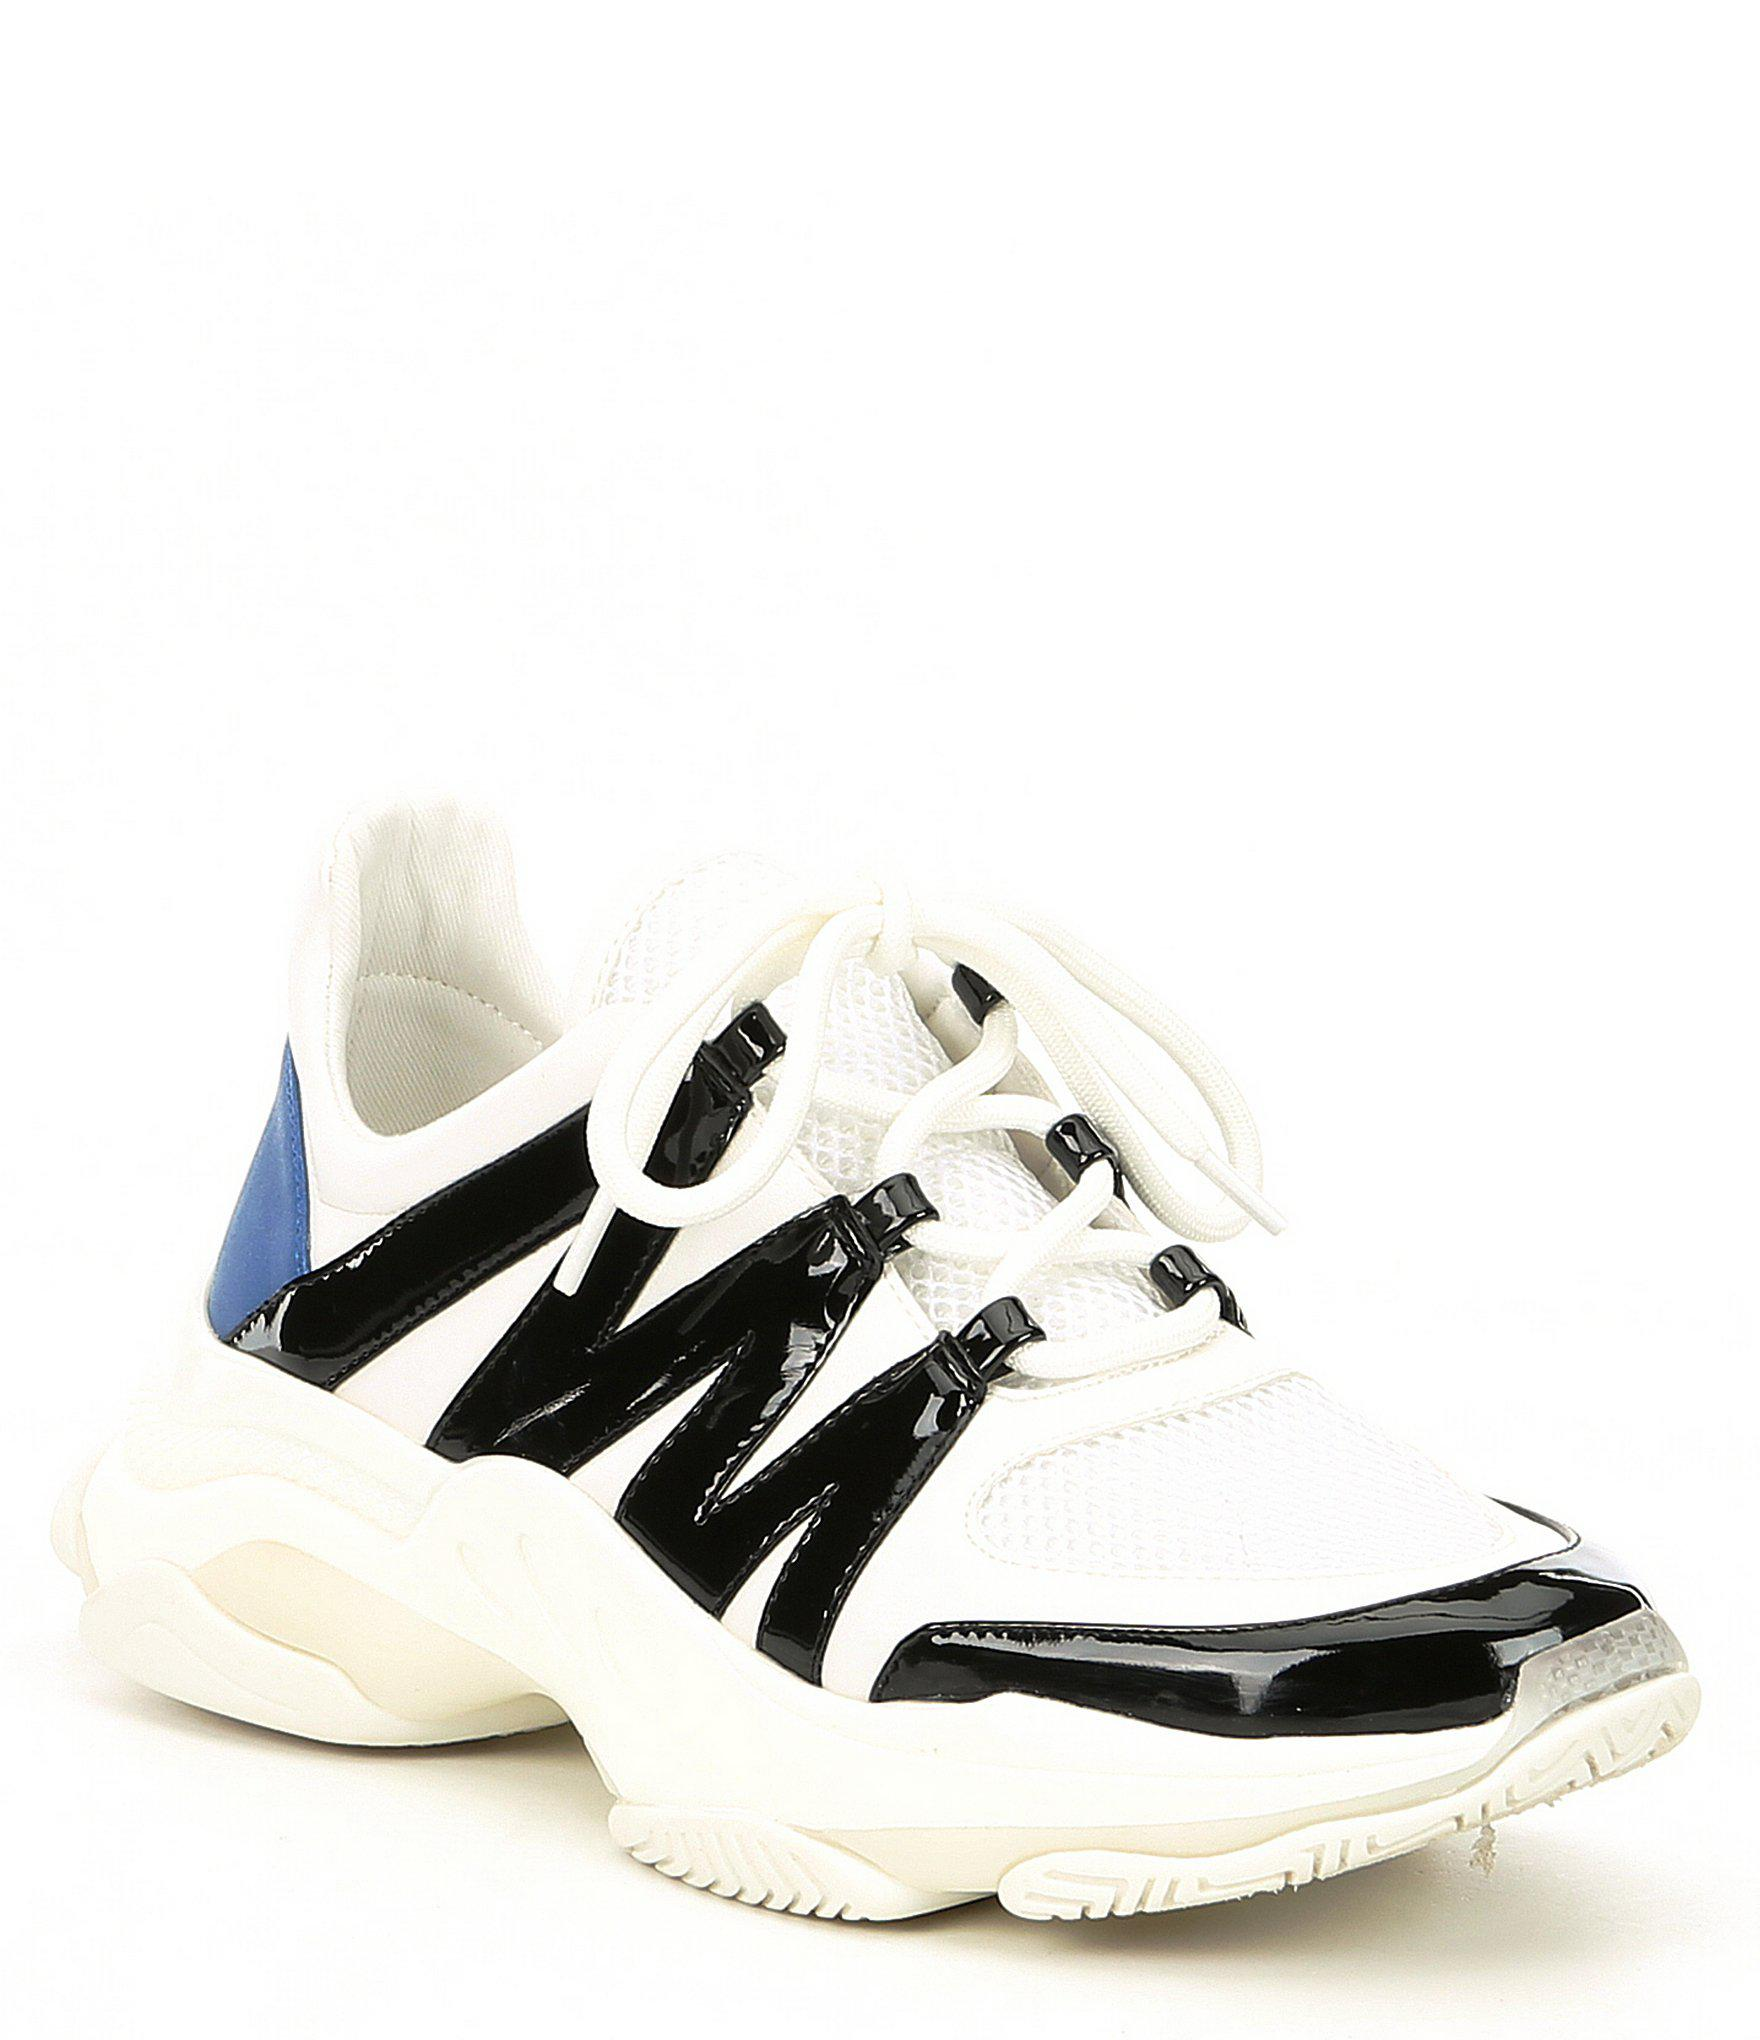 863e6483e64 Lyst - Steve Madden Heartless Novelty Flat Sneaker in White - Save 67%